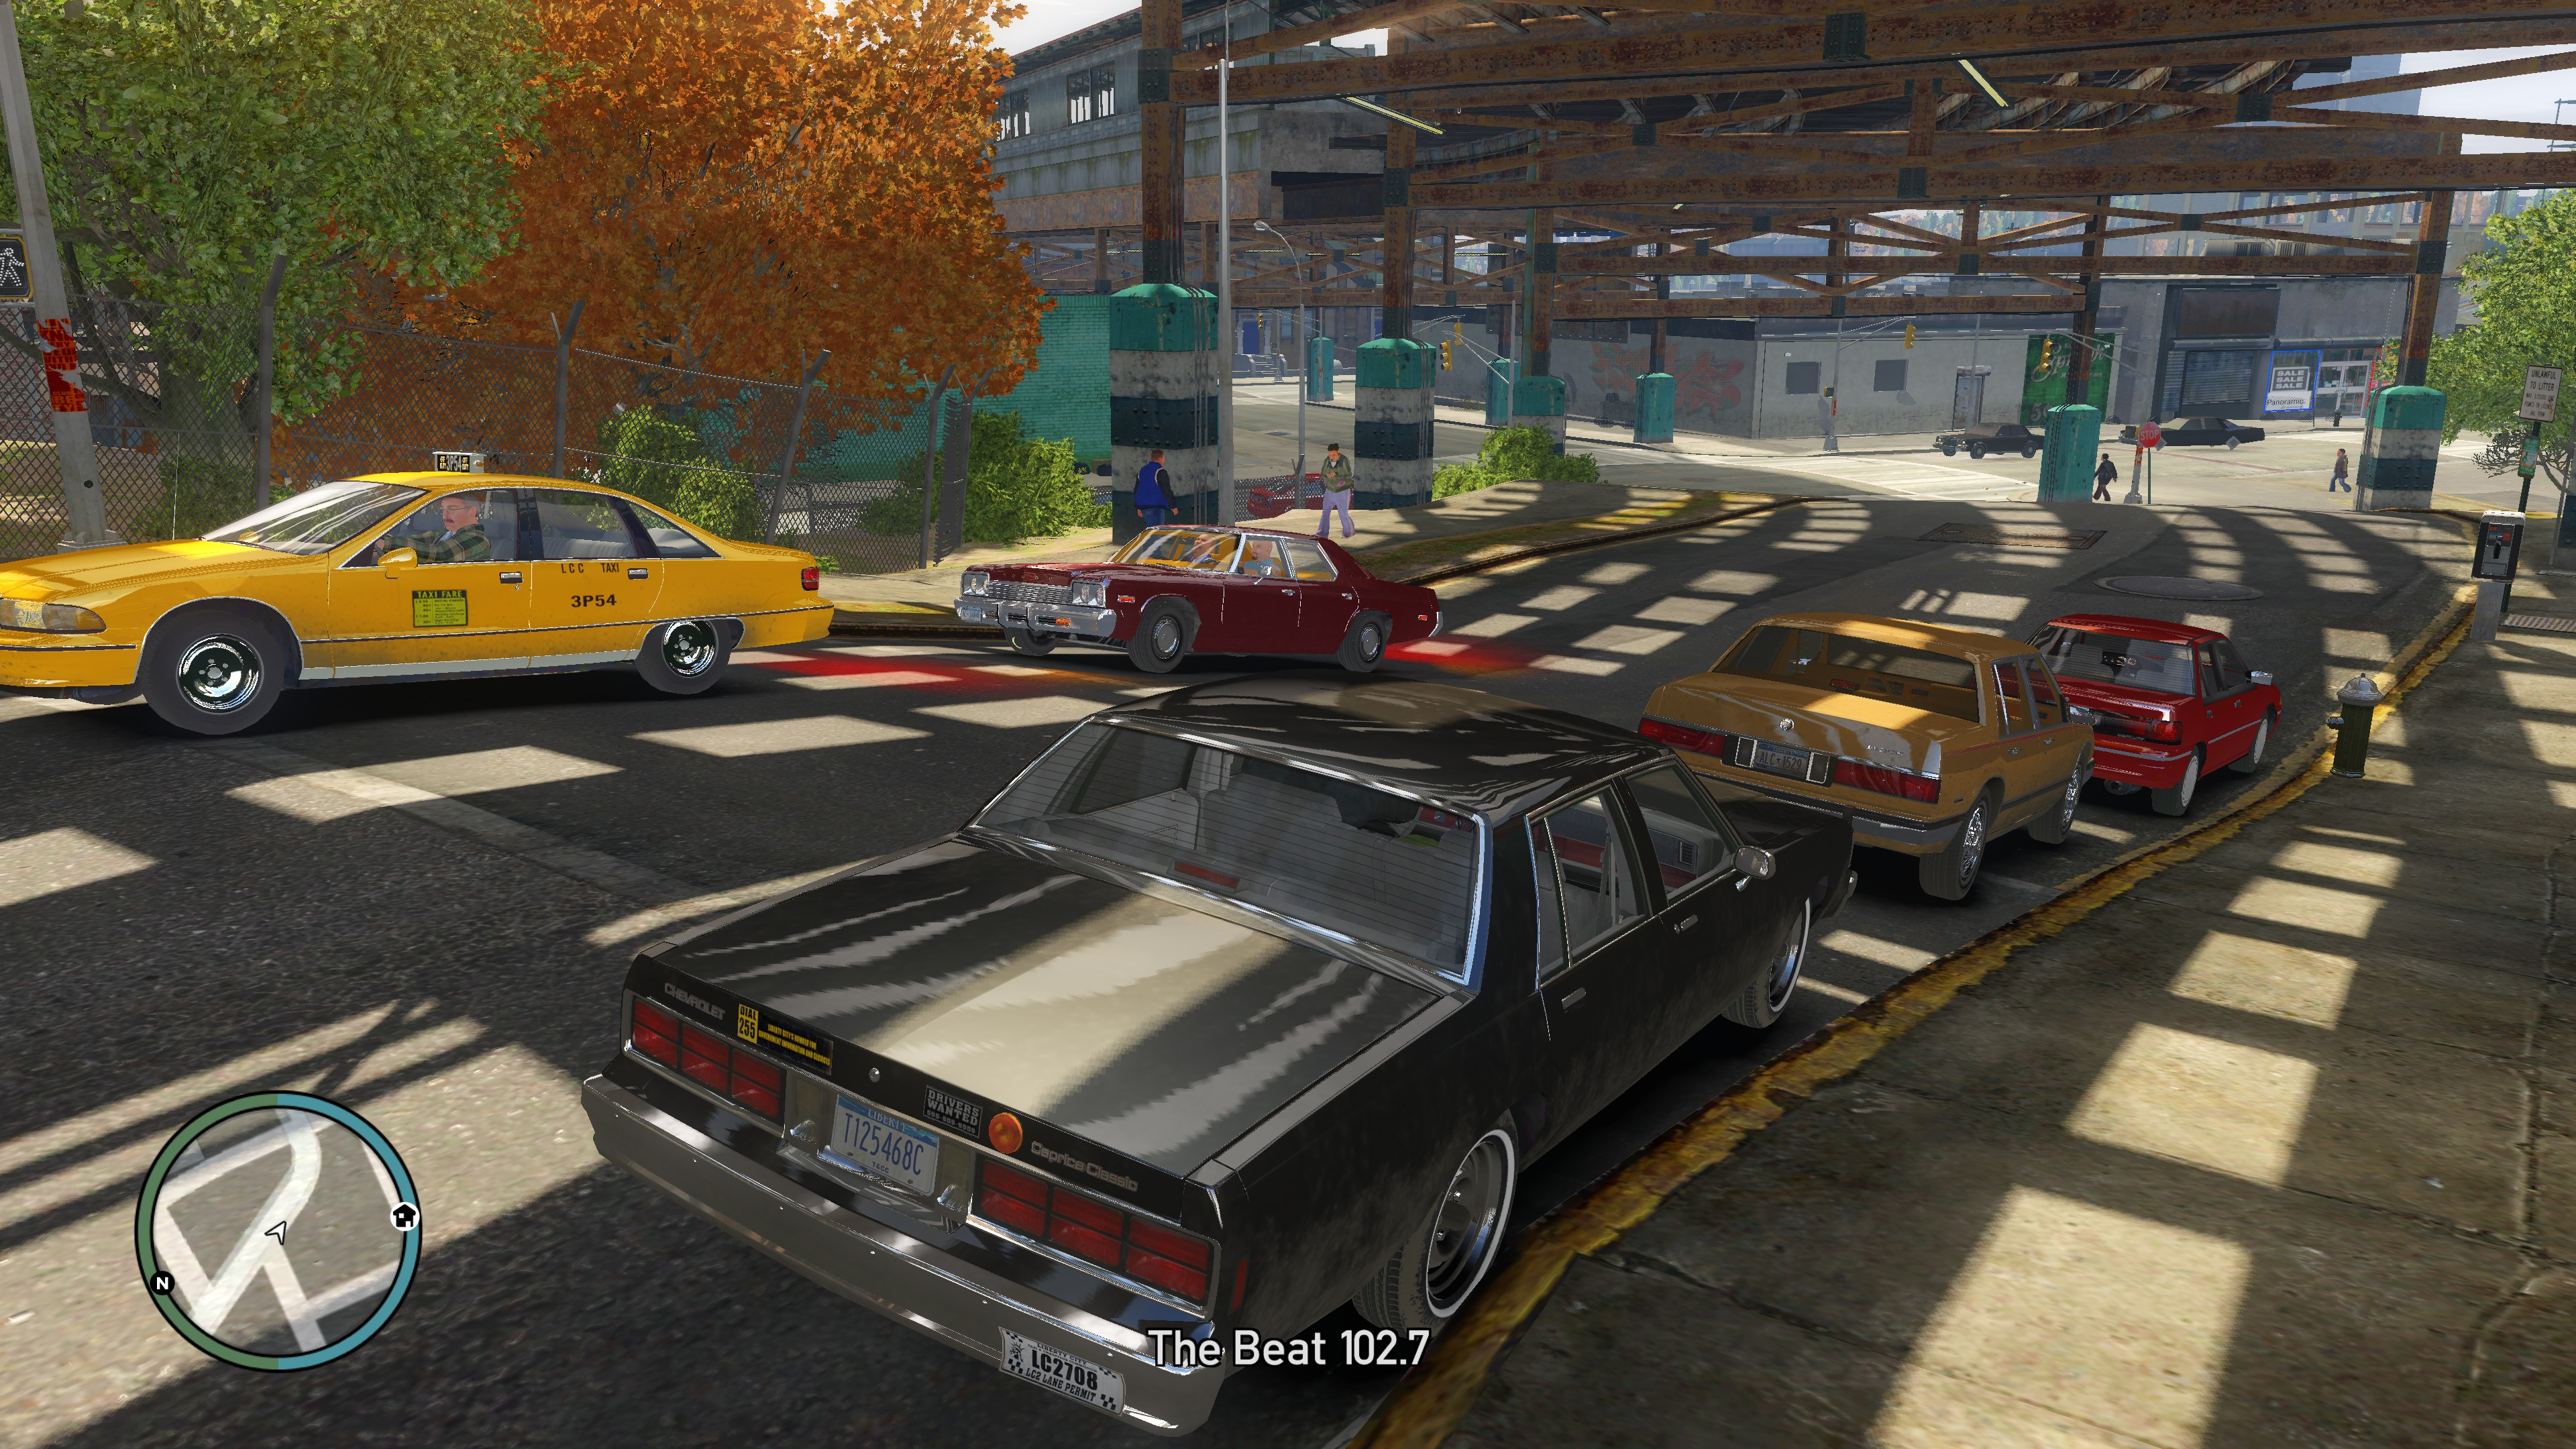 Realistic car pack at Grand Theft Auto IV Nexus - Mods and ...